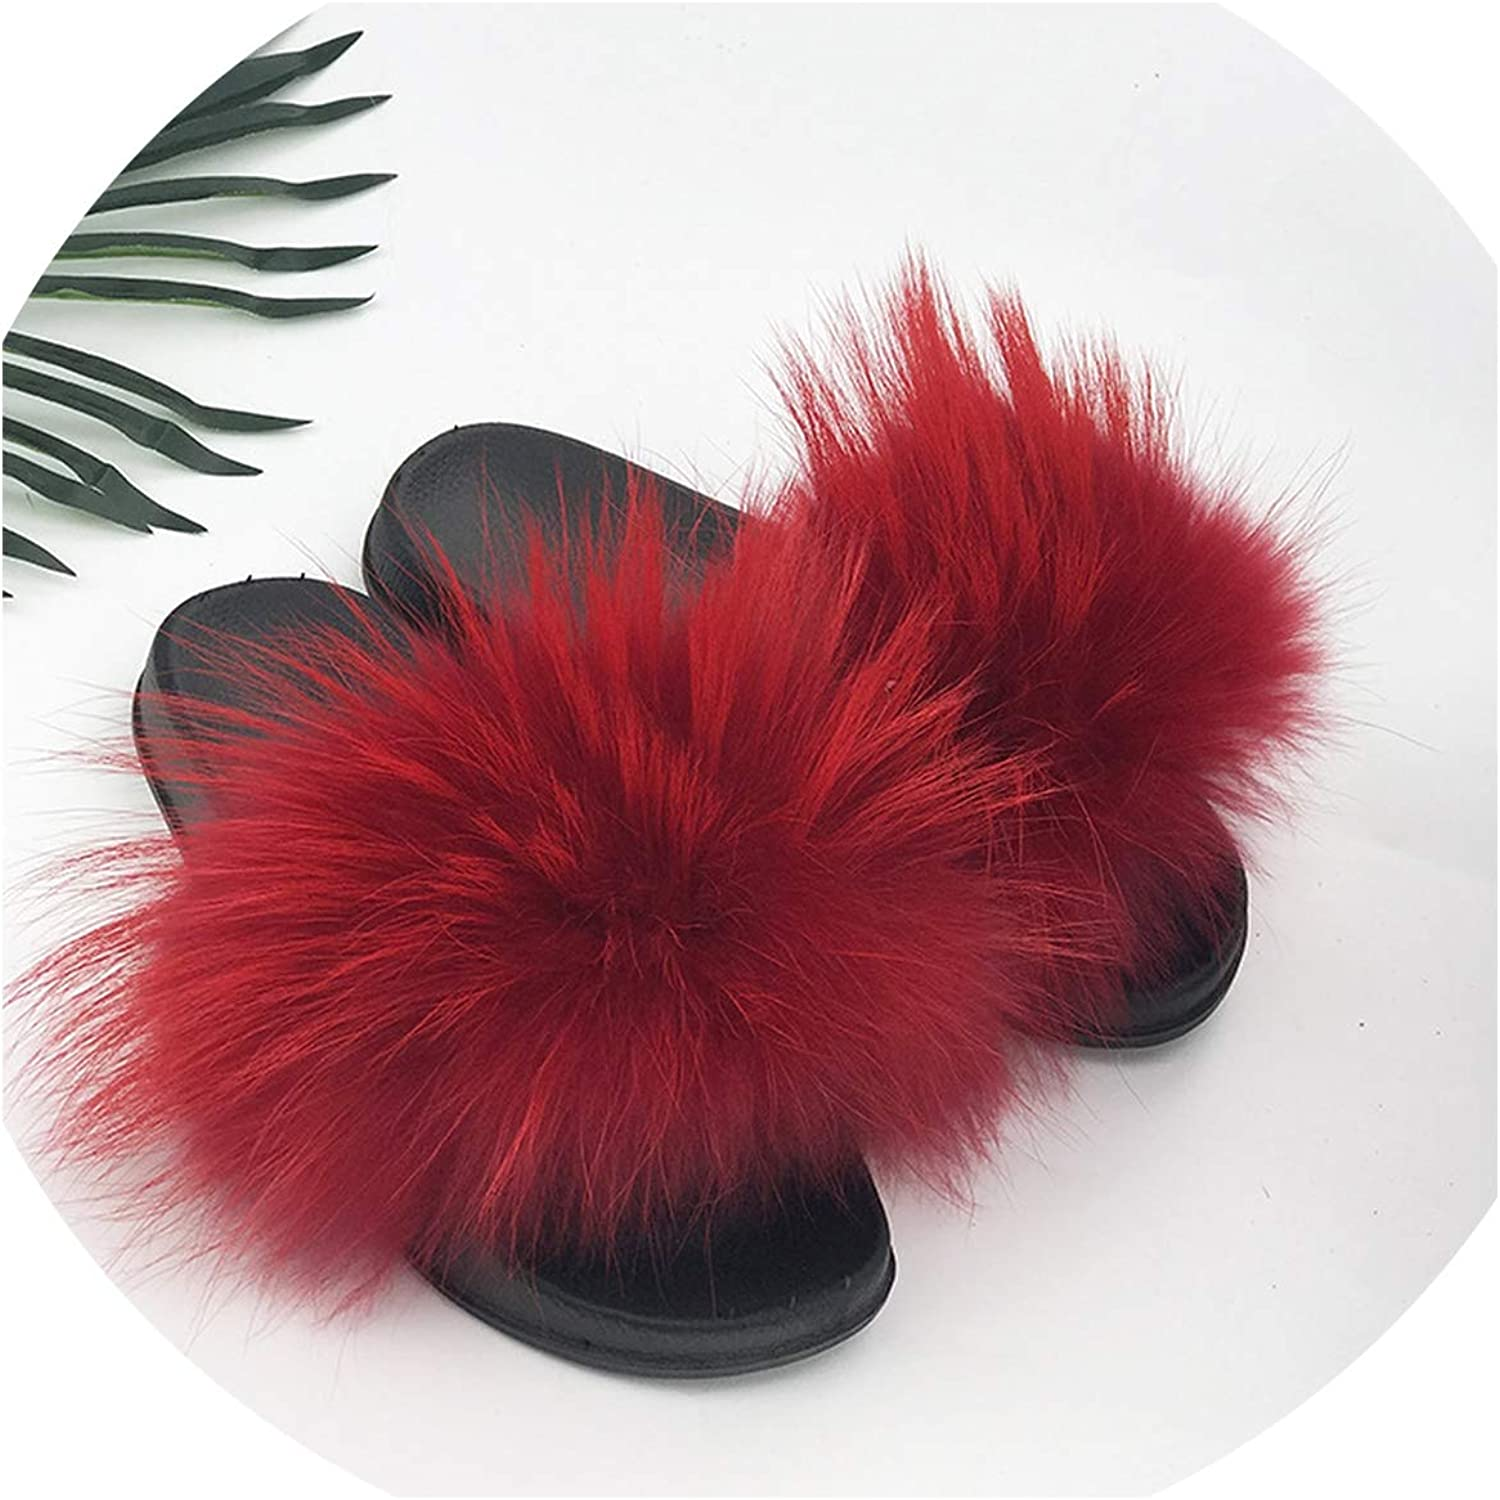 Just XiaoZhouZhou 28 colors Real Fur Slippers Women Fox Fluffy Sliders Comfort with Feathers Furry Summer Flats Sweet Ladies shoes Plus Size 36-45,18,9.5